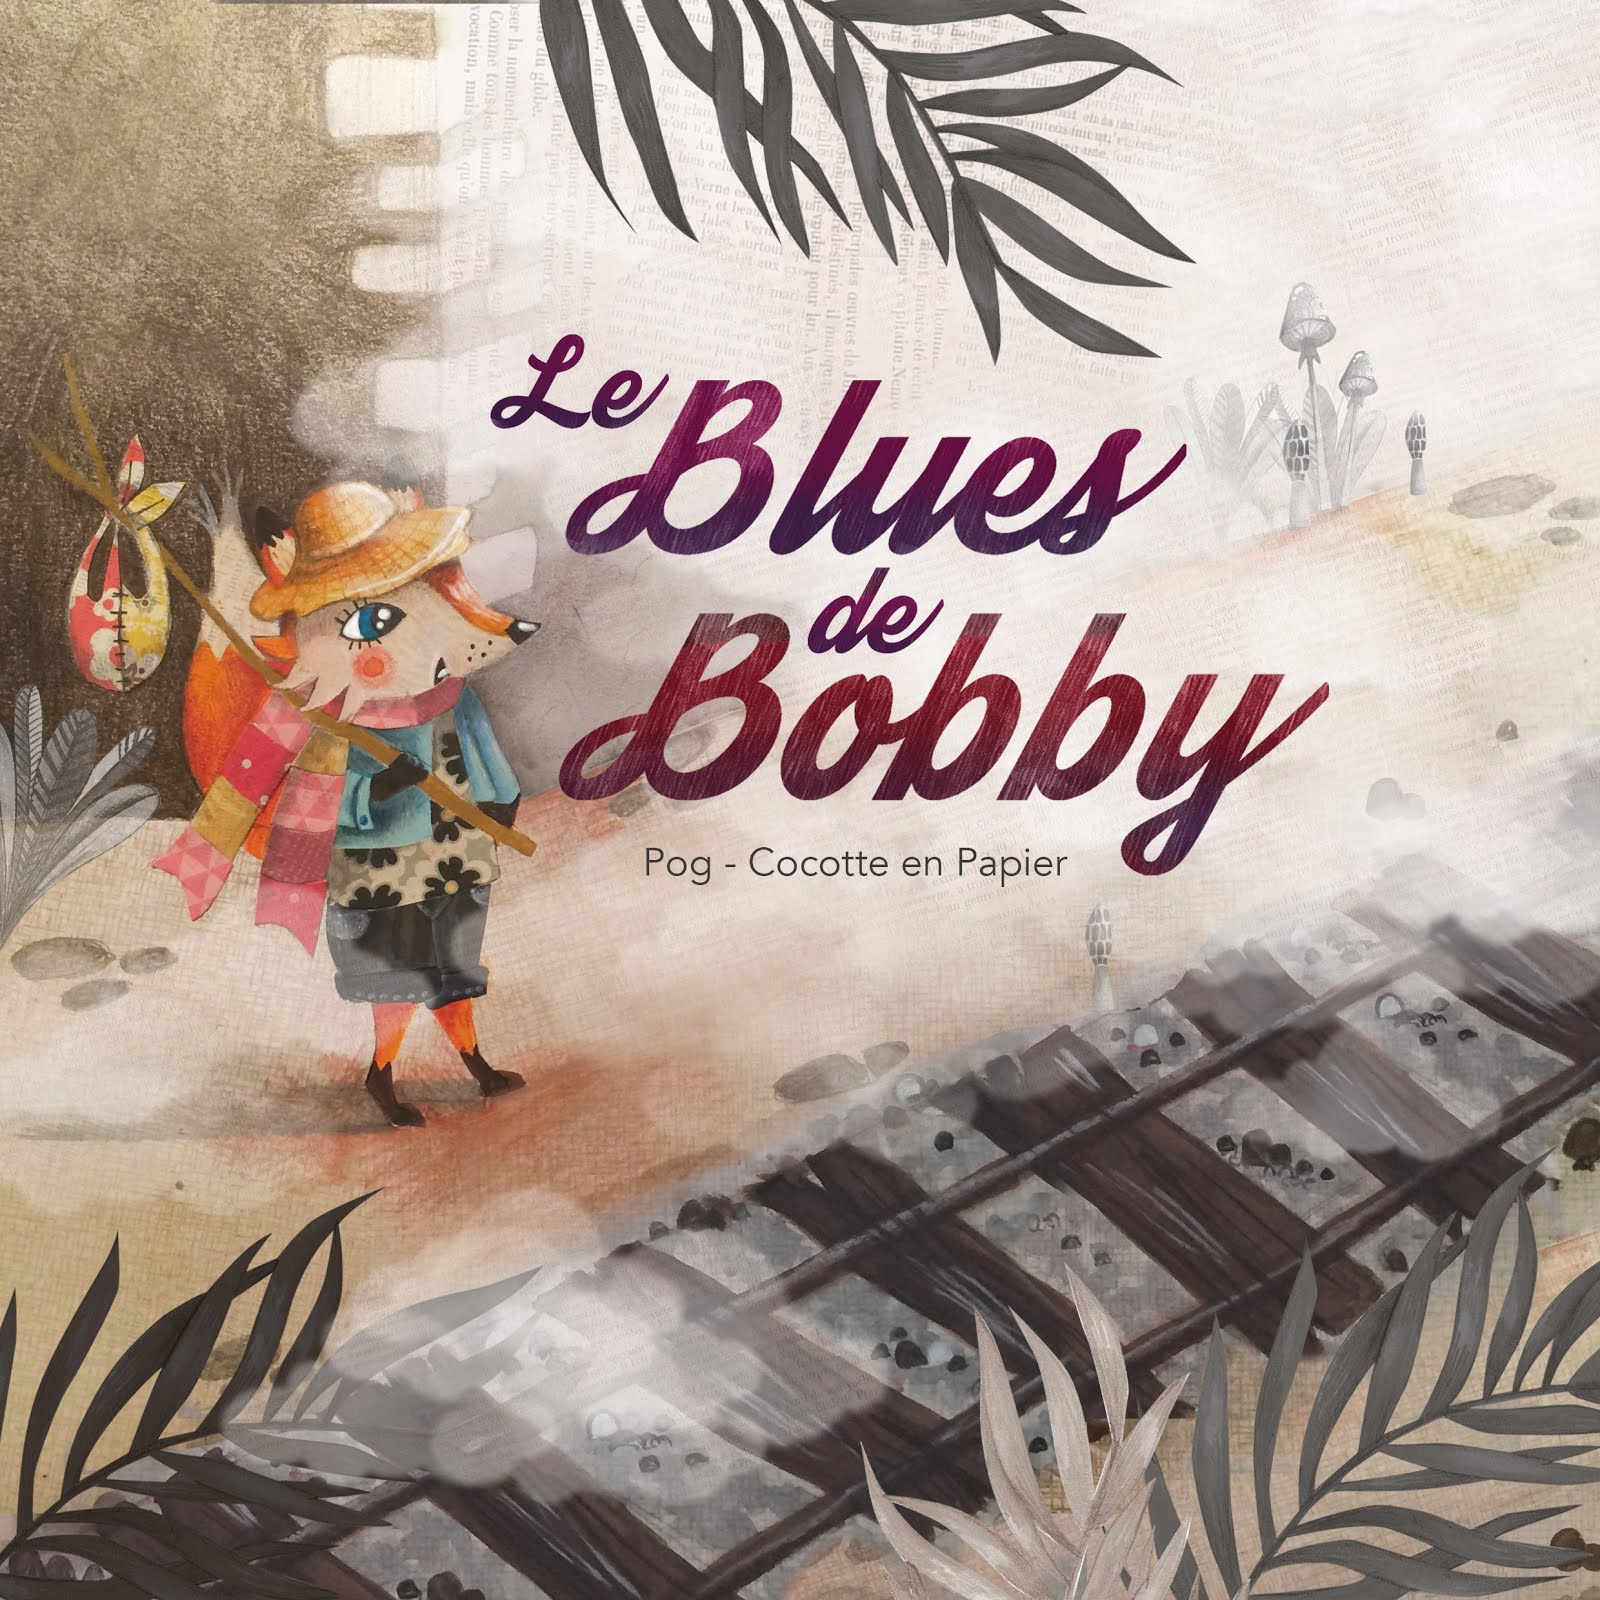 Le blues de Bobby